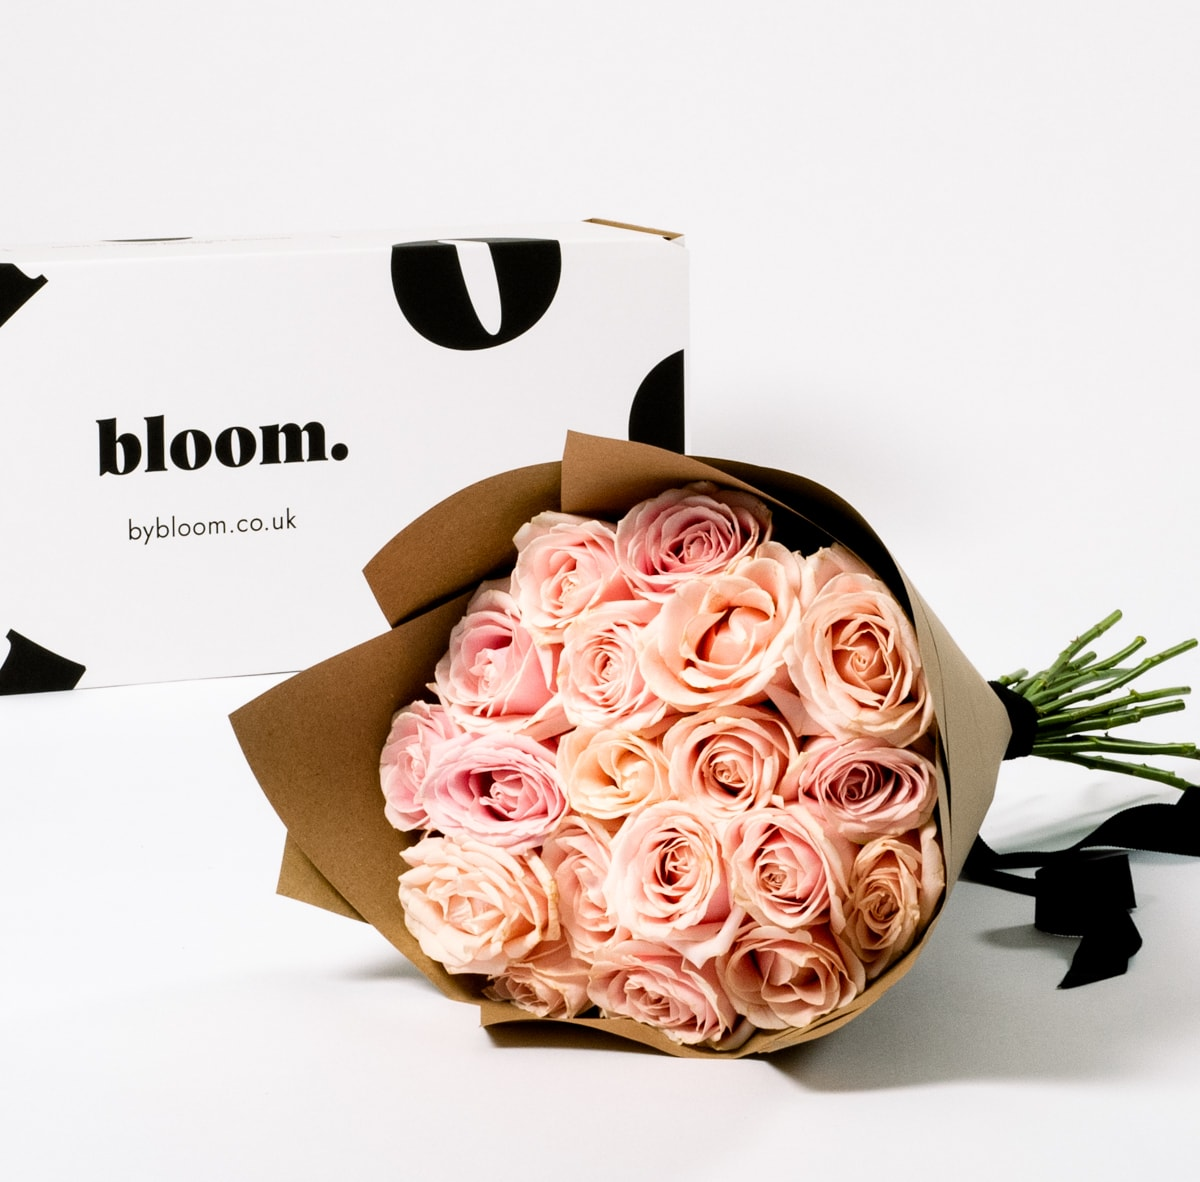 Bloom Flower Delivery | Sweet Avalanche Roses